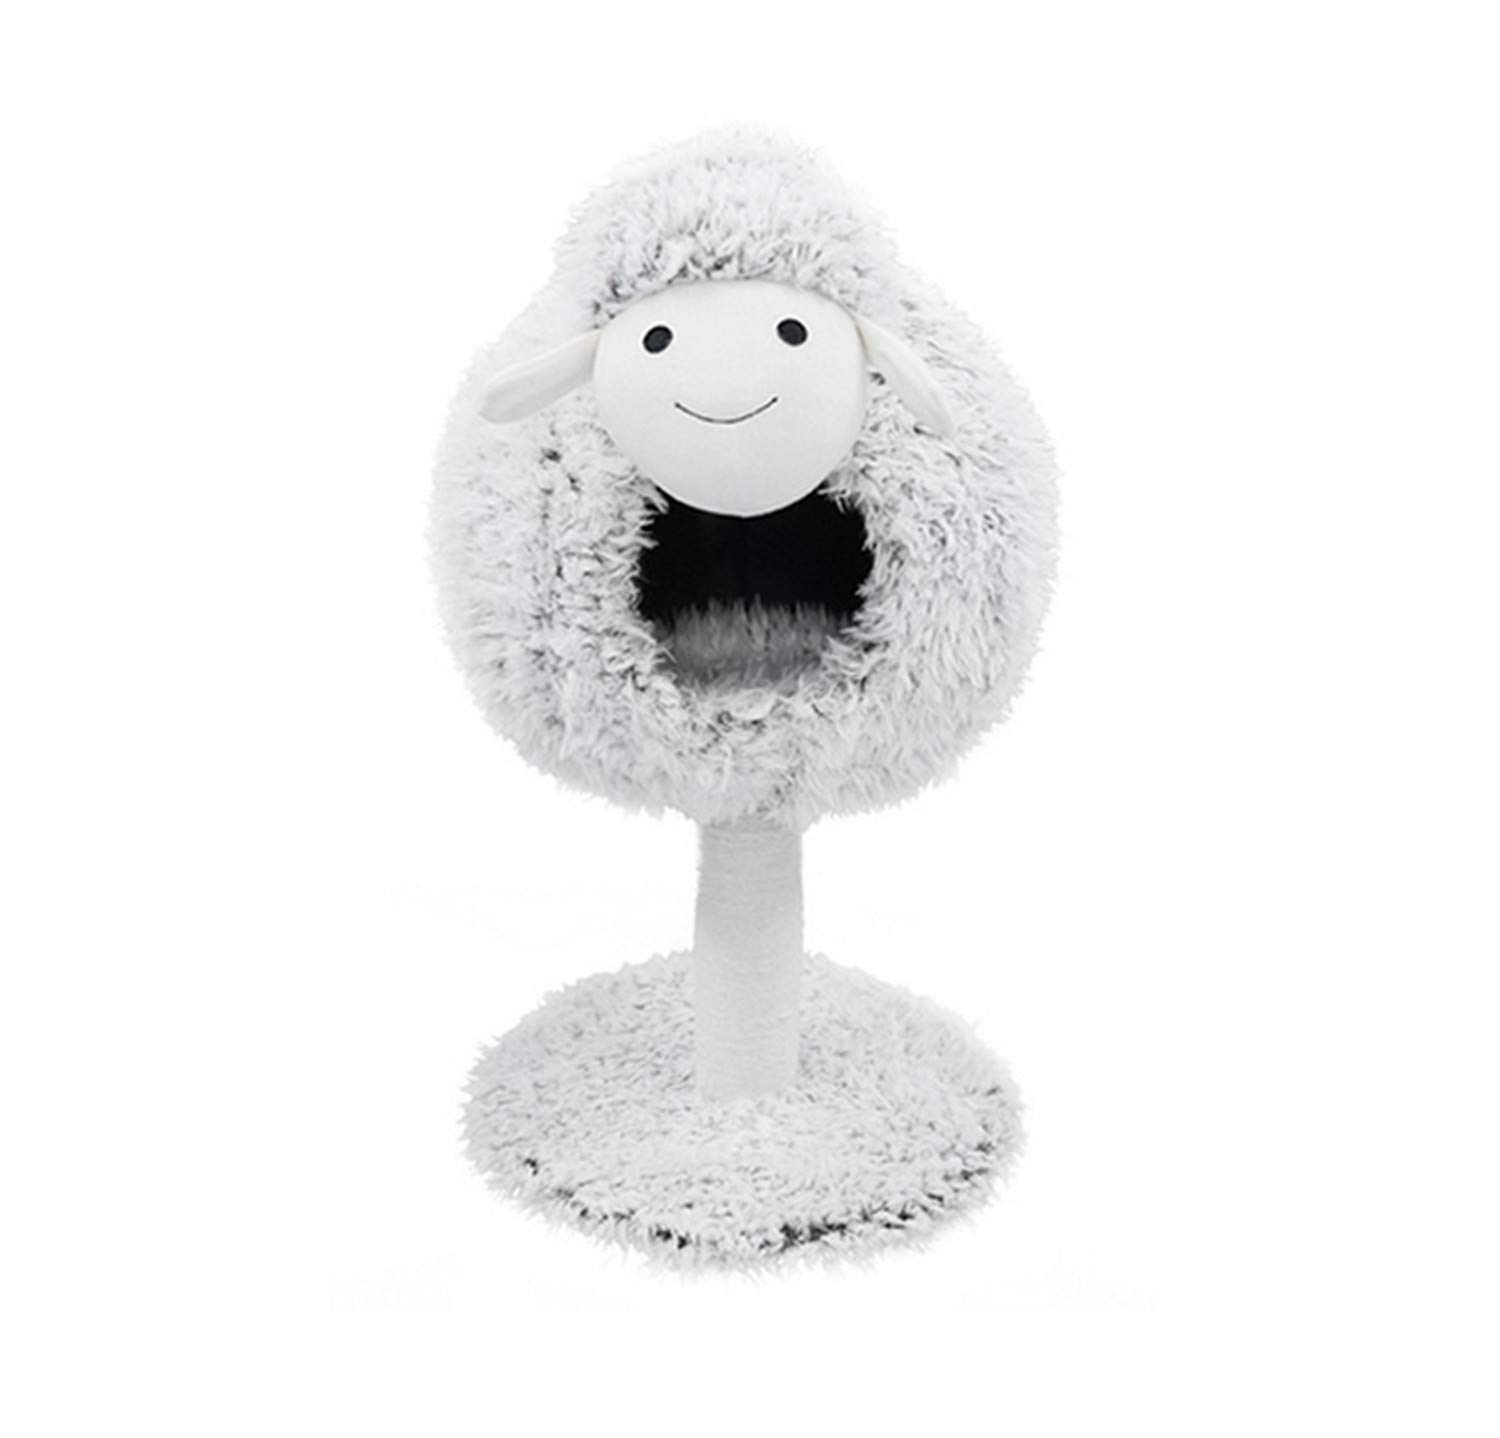 UNIQUE-F Cat Furniture Cat Tree Cat Tower And Sisal Grab Hammock Sheep Style Cat Bed Platform Plush Comfort